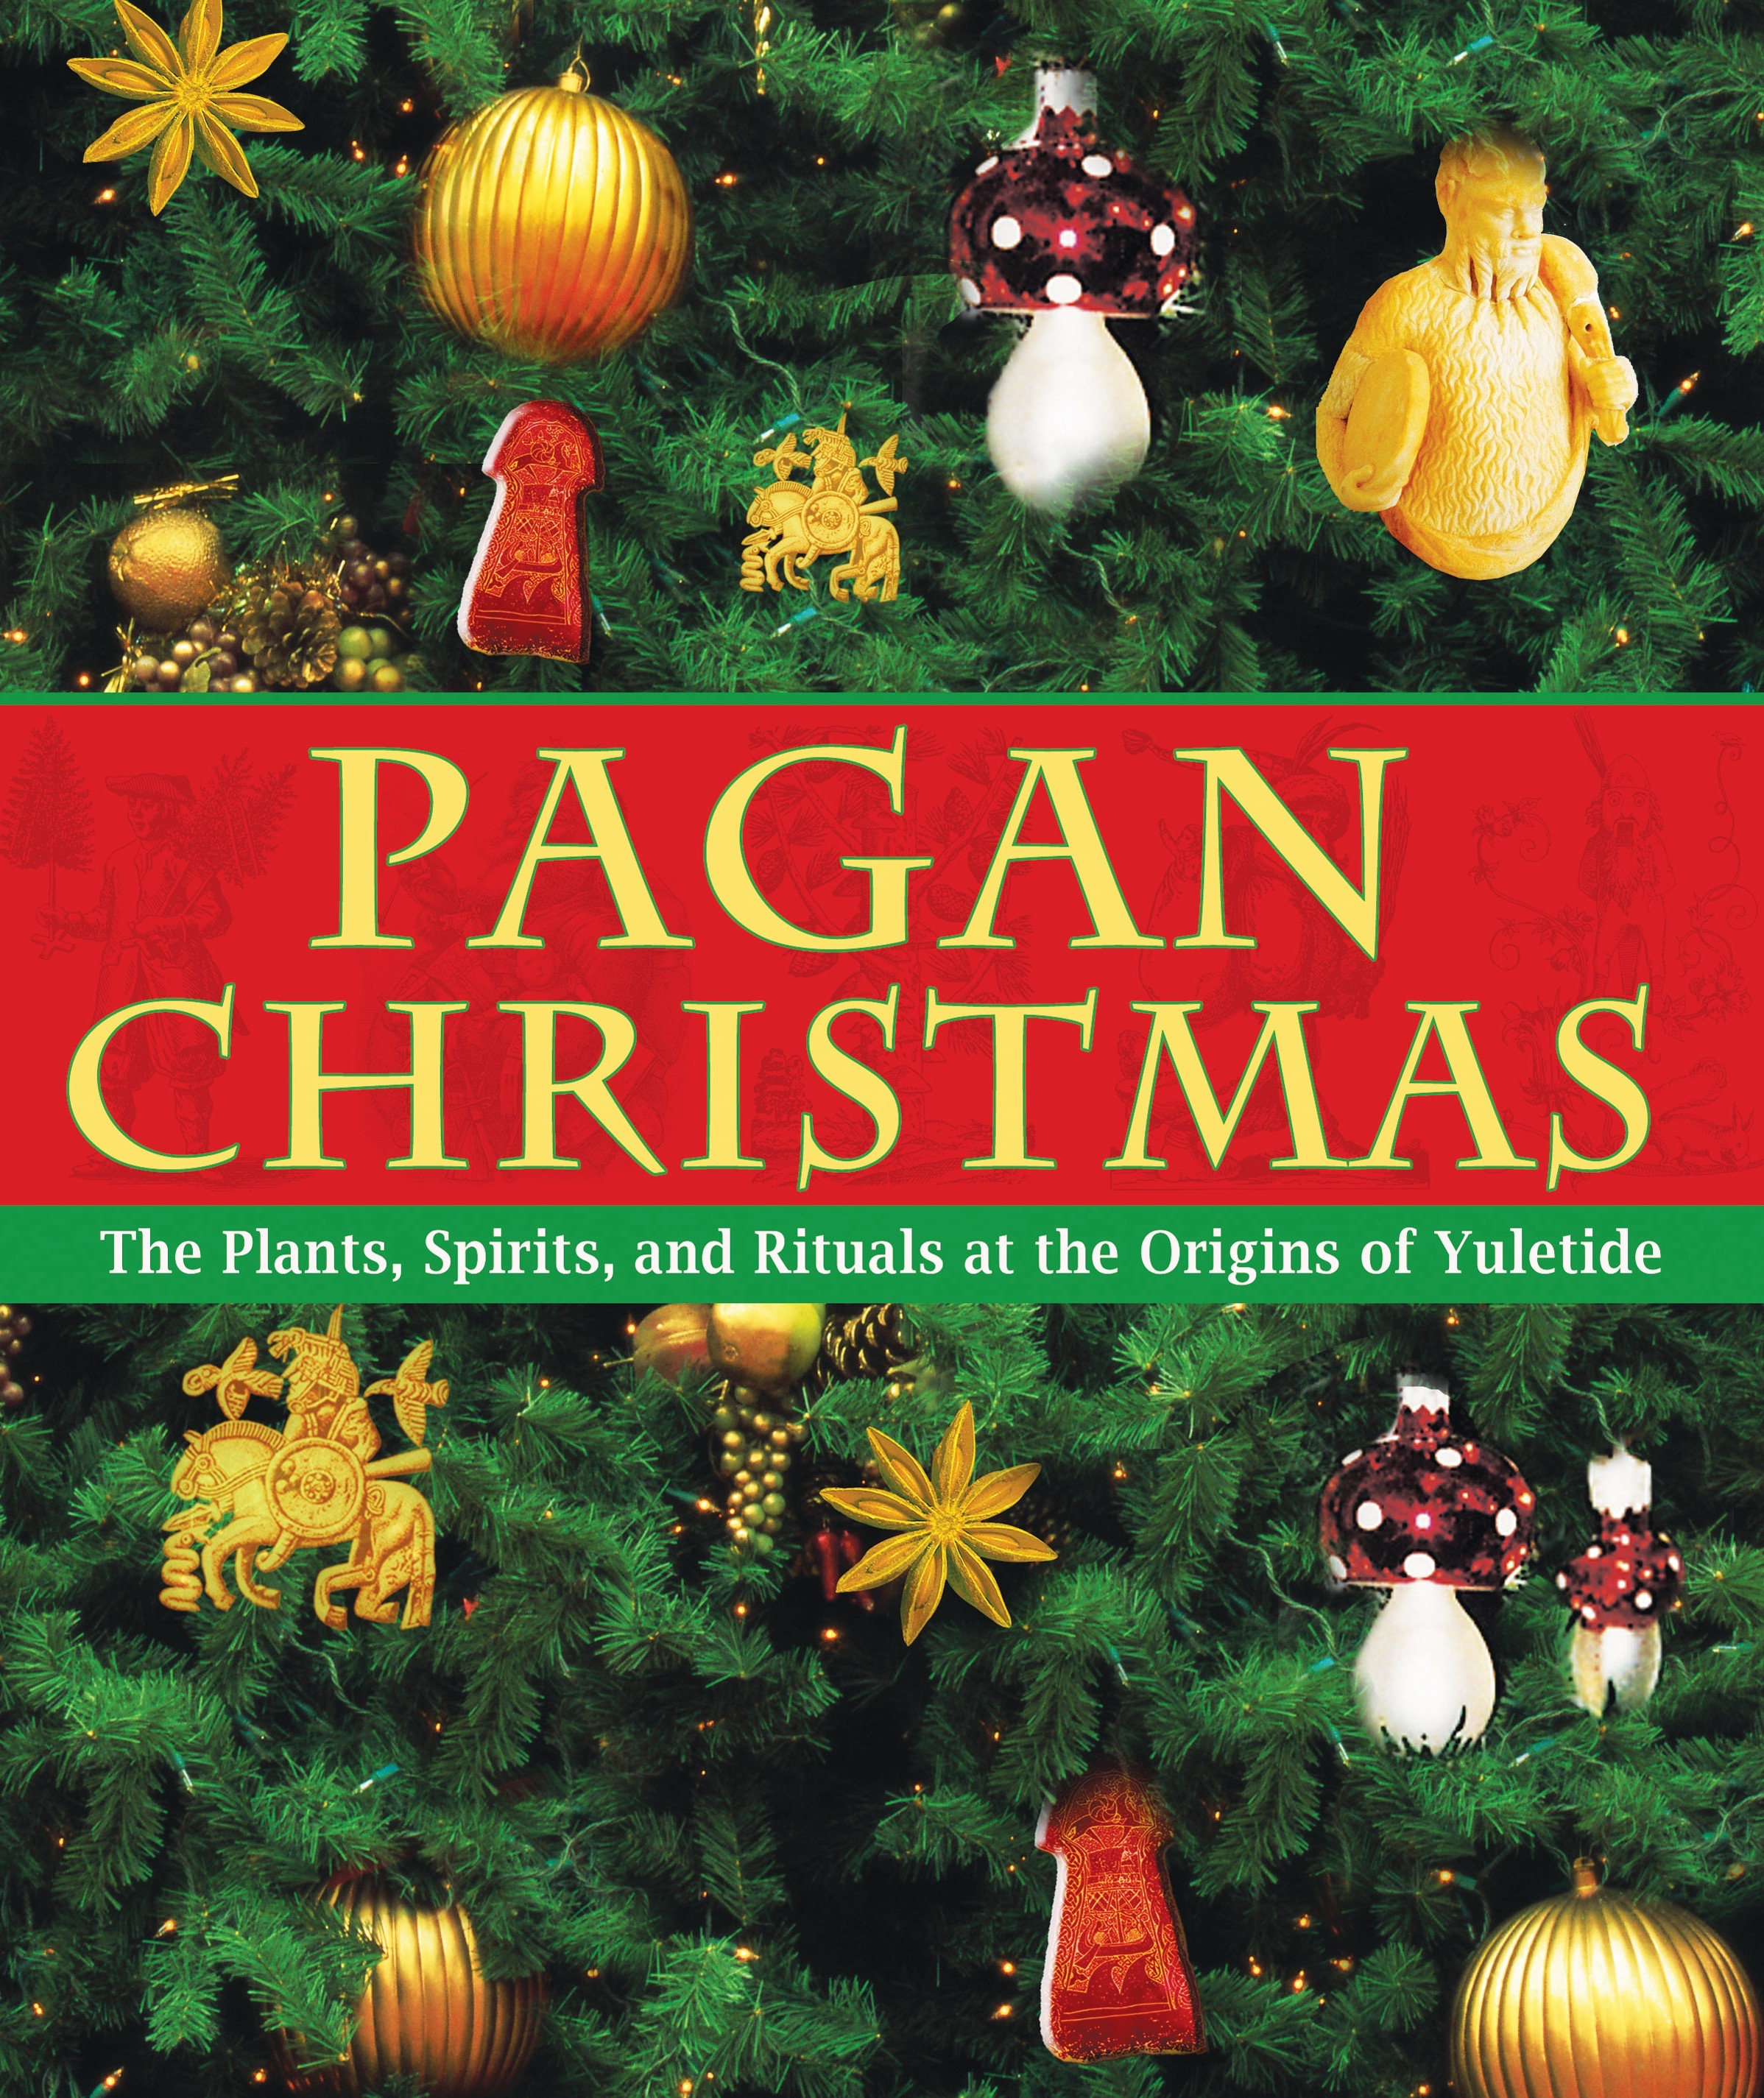 The Pagan Roots of Christmas... - Lines & Precepts